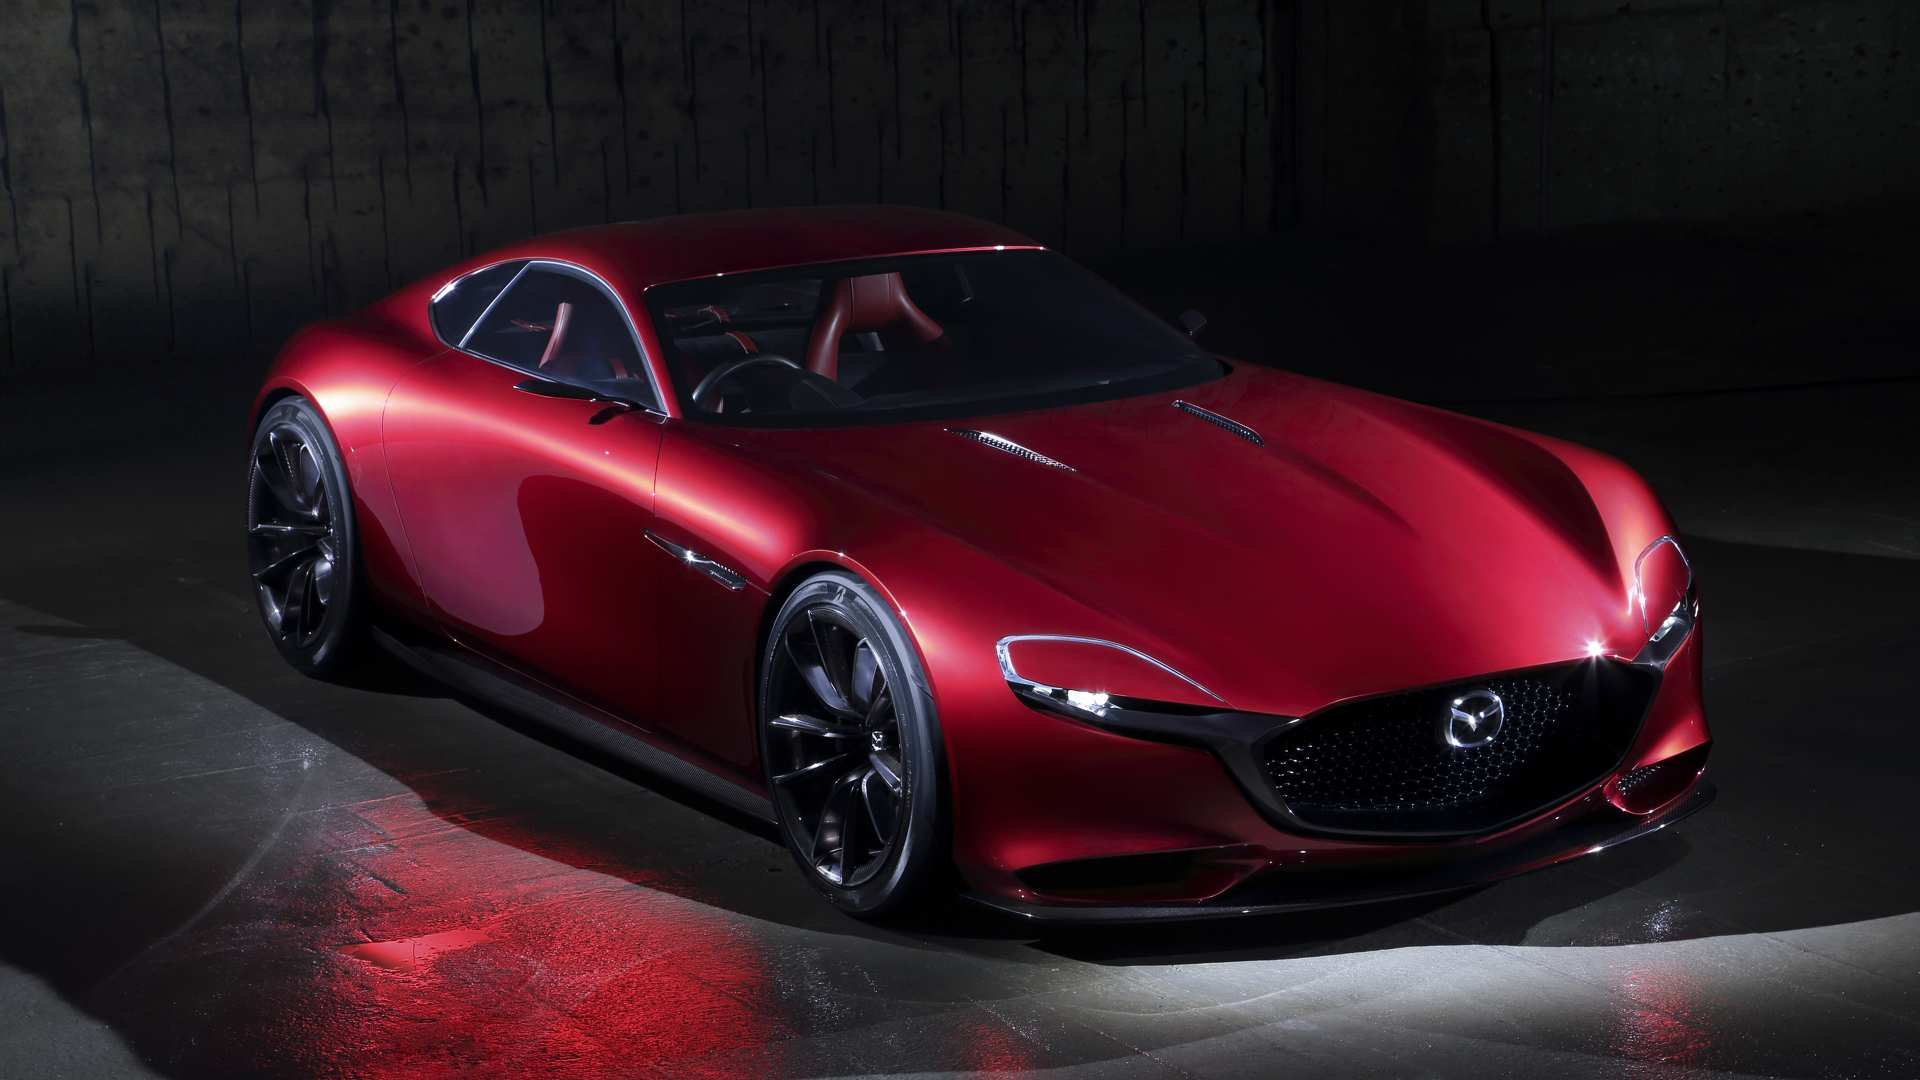 48 Gallery of Mazda 2019 Concept New Review for Mazda 2019 Concept